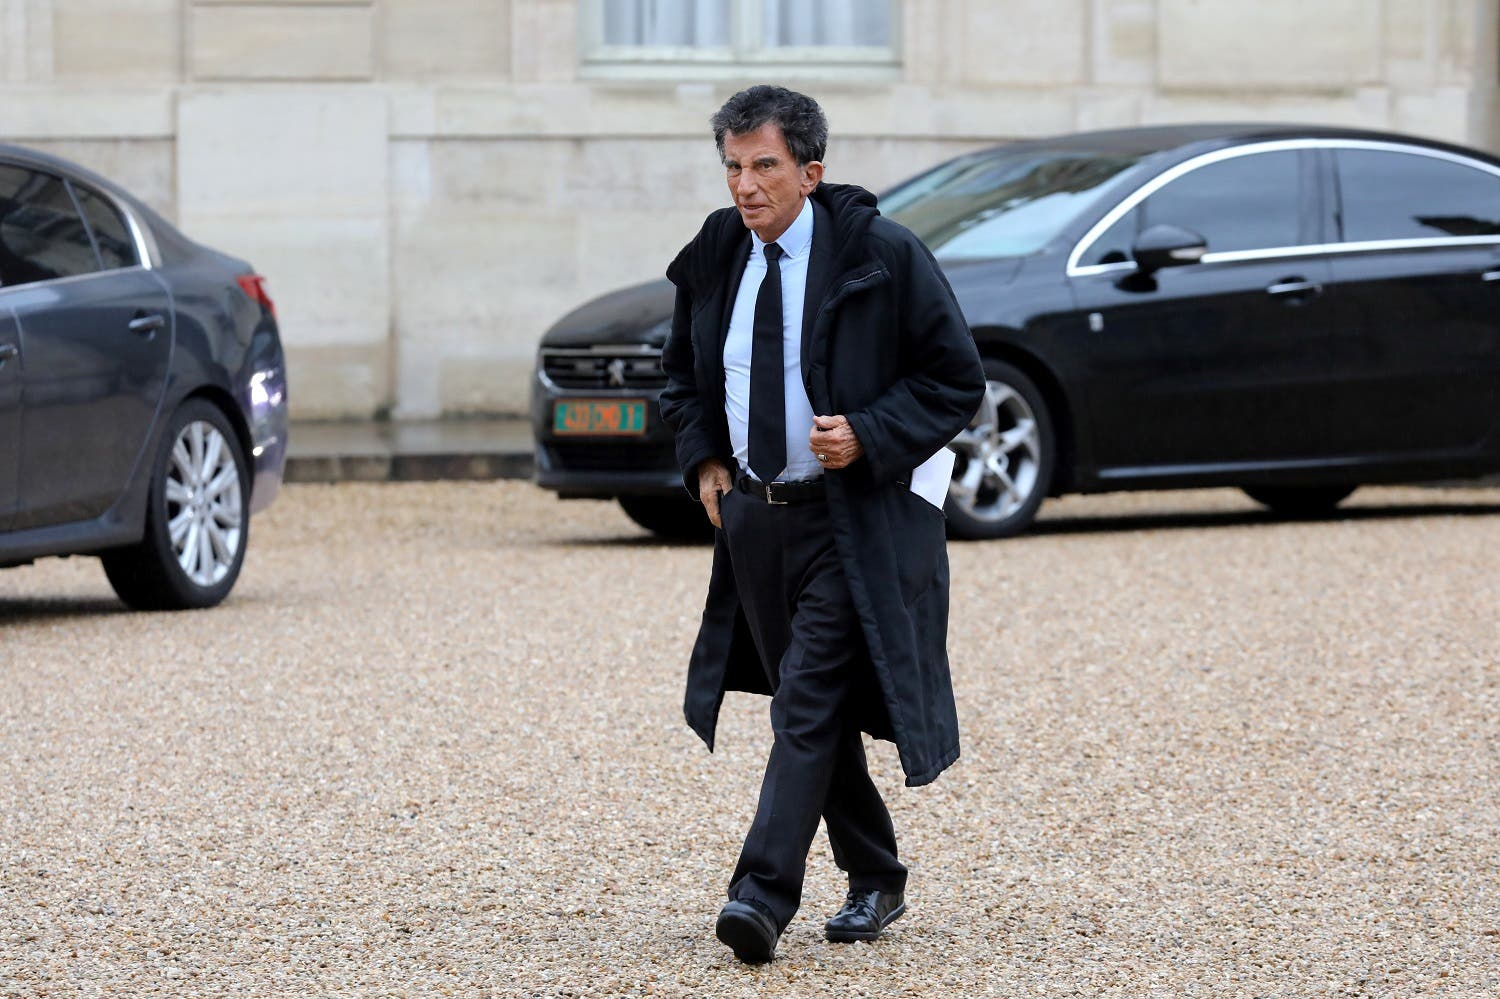 President of the Arab World Institute (IMA) Jack Lang arrives to attend a New Year wishes ceremony at the Elysee palace in Paris on January 4, 2018.  (AFP)